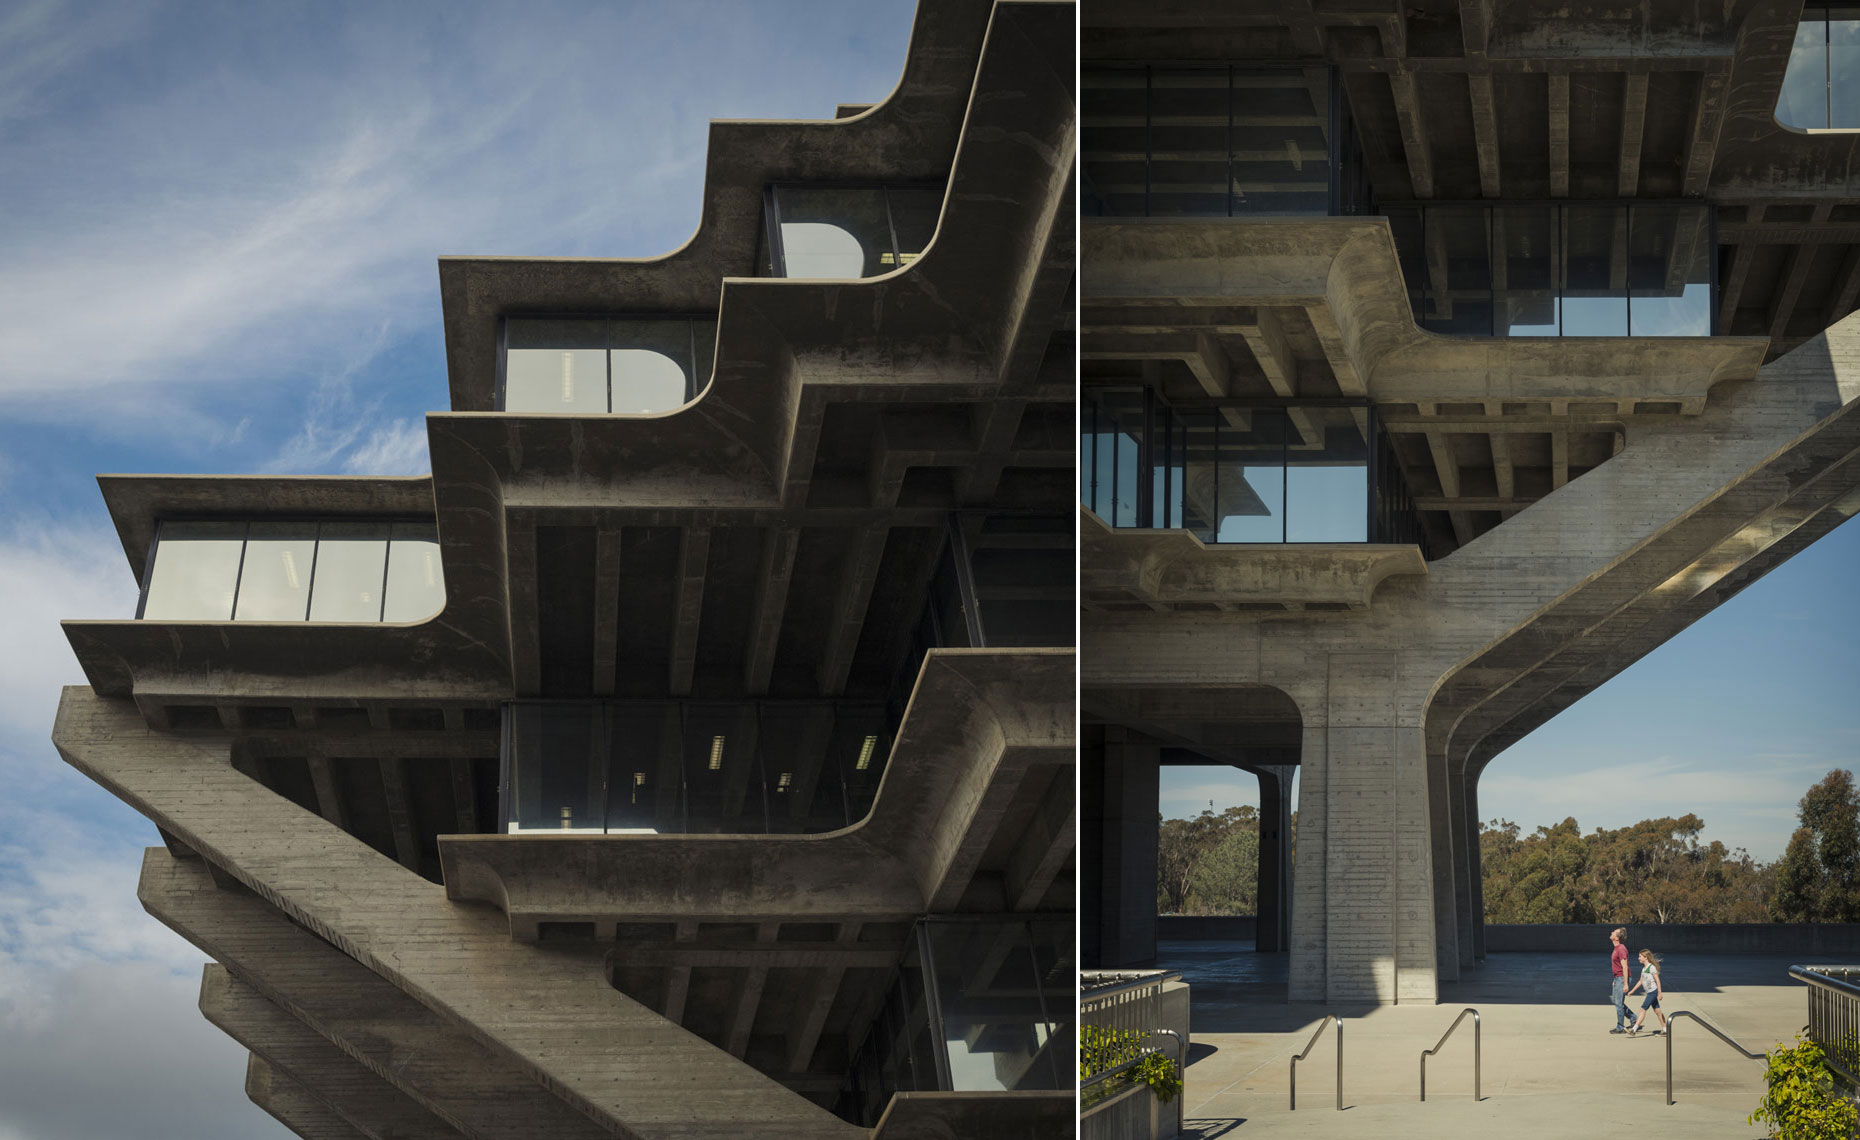 jeff-green-geisel-library-ucsd-la-jolla-exterior-architecture-details